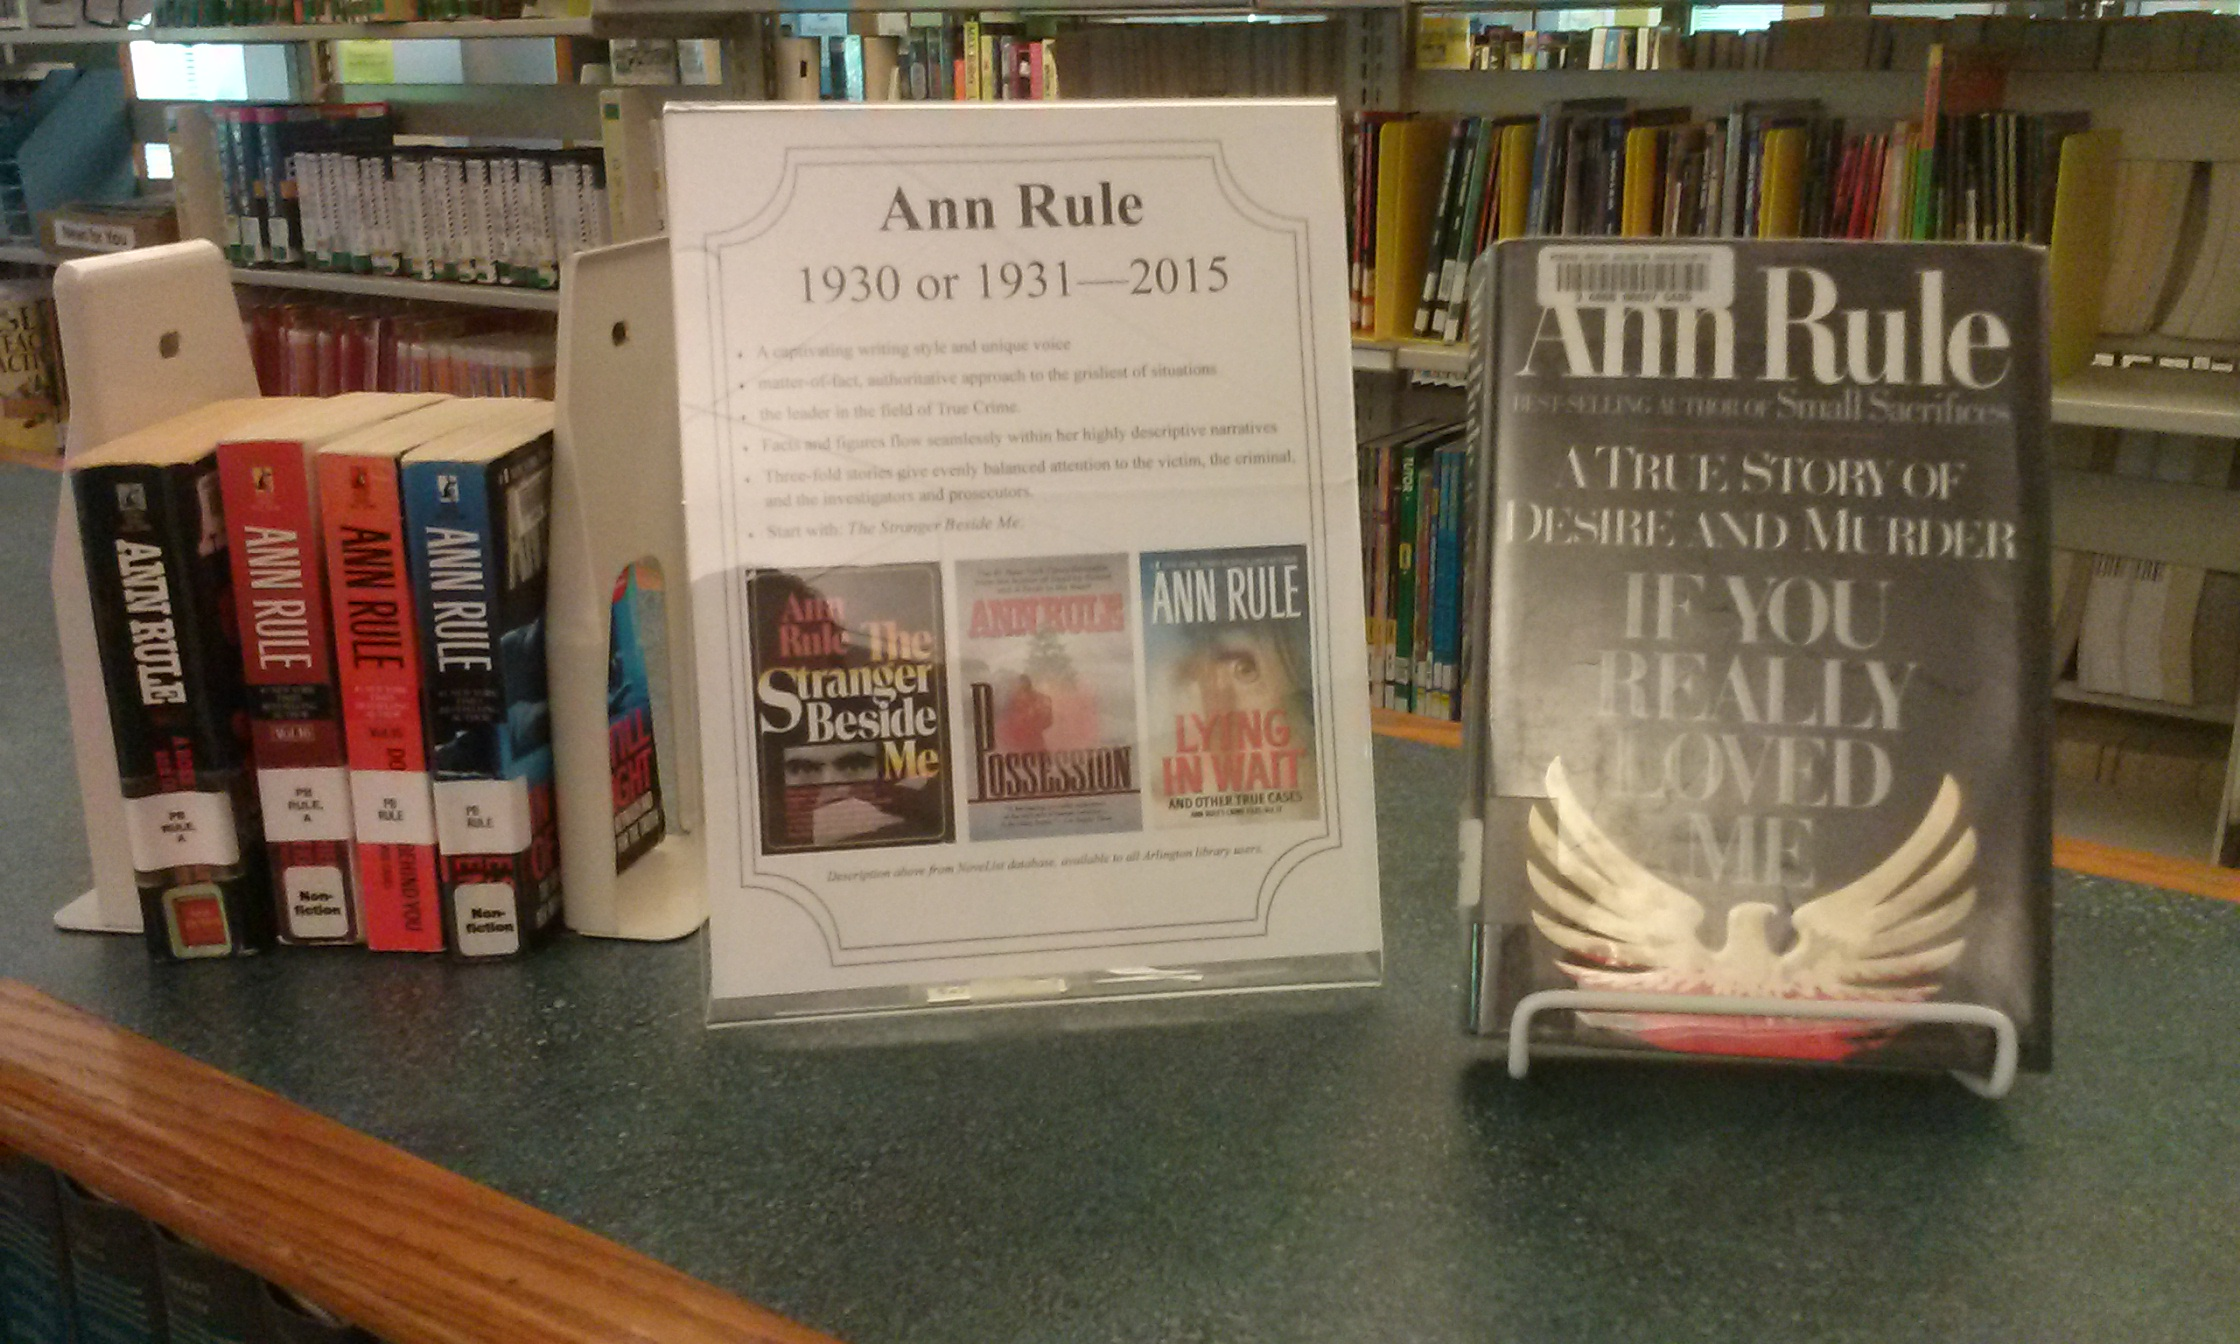 A Display Of Ann Rule's Books On A Counter In The Reference Area Check Out  One Of El Doctorow's